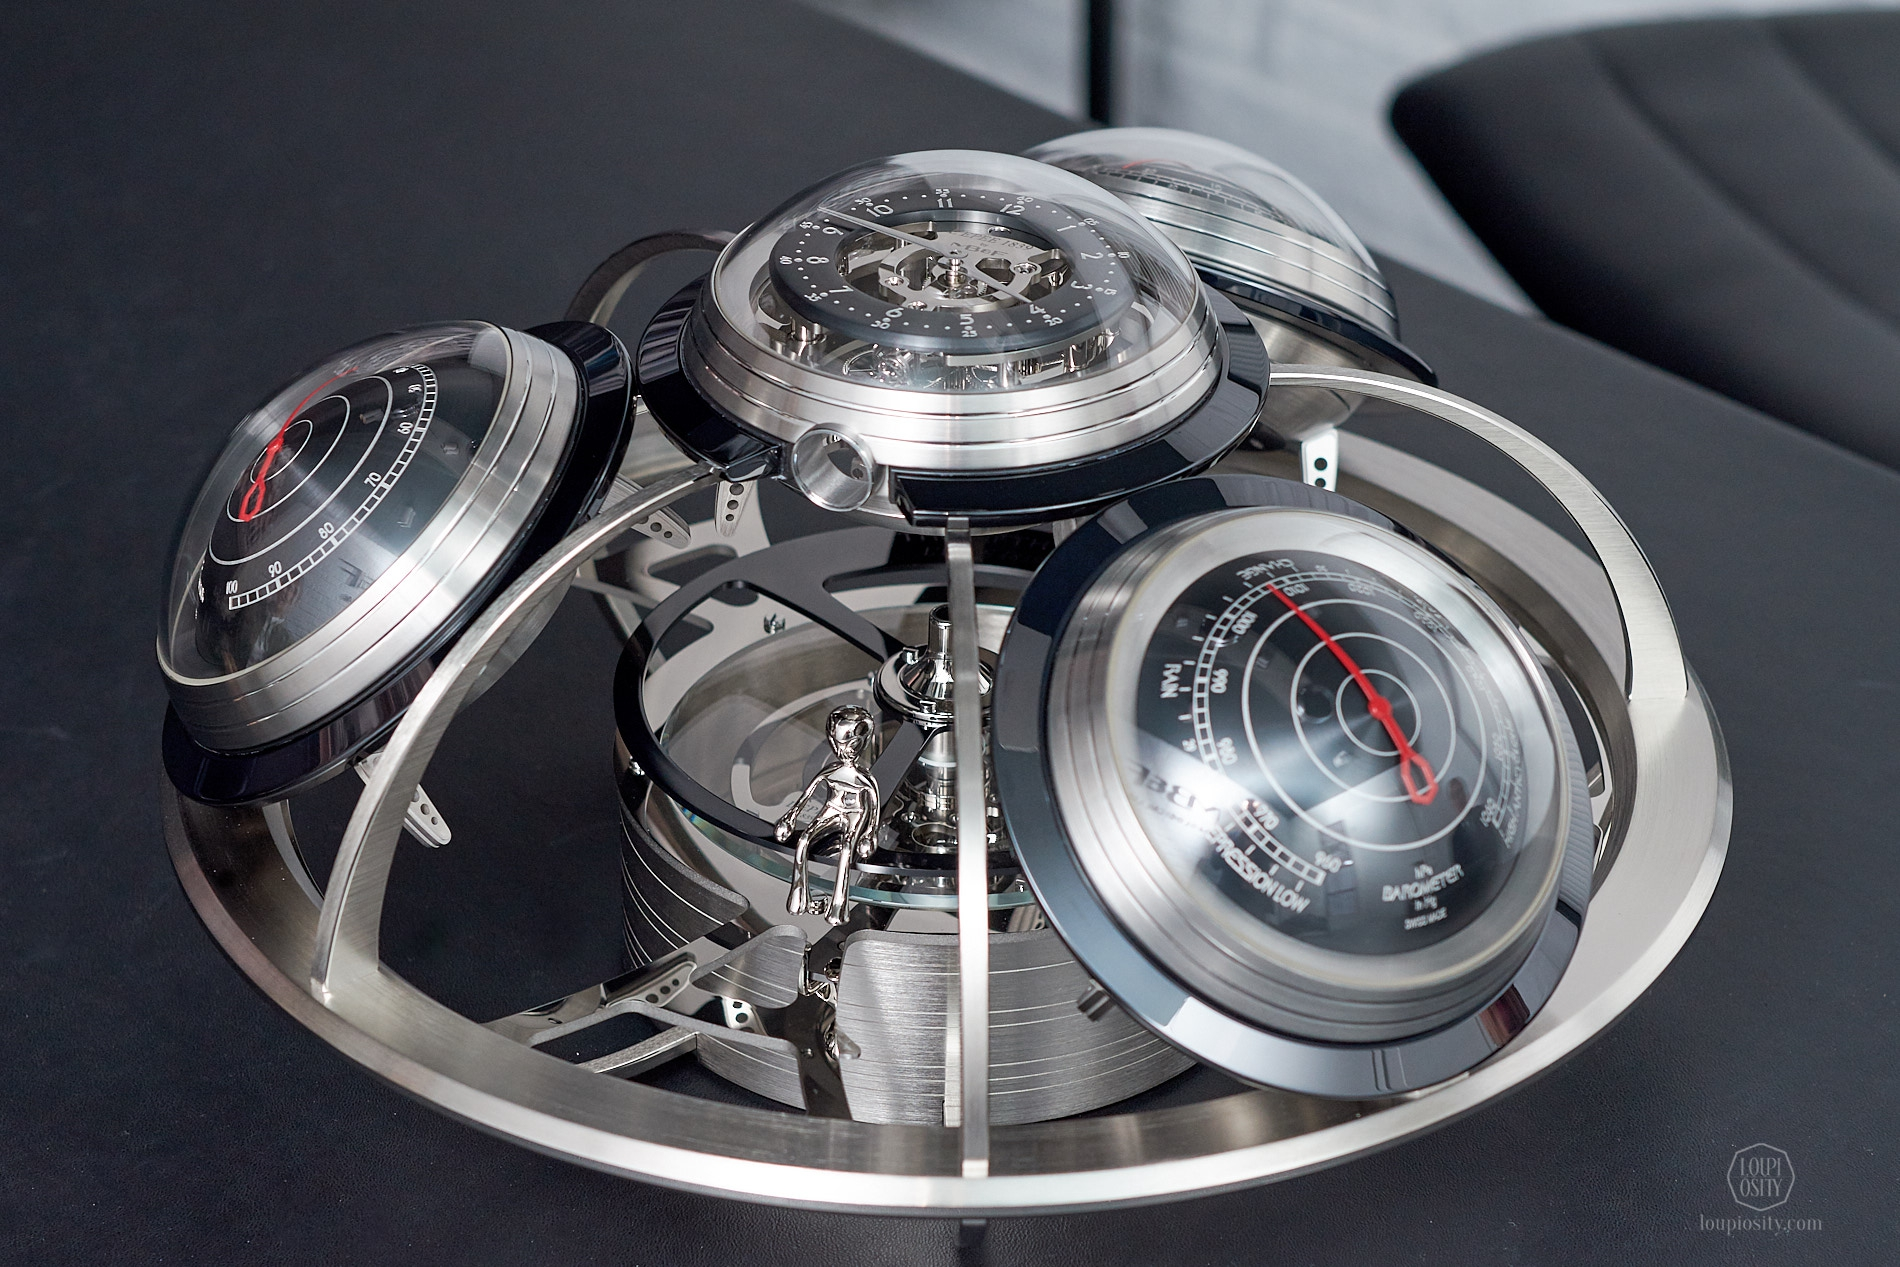 MB&F and L'Epée - The Fifth Element